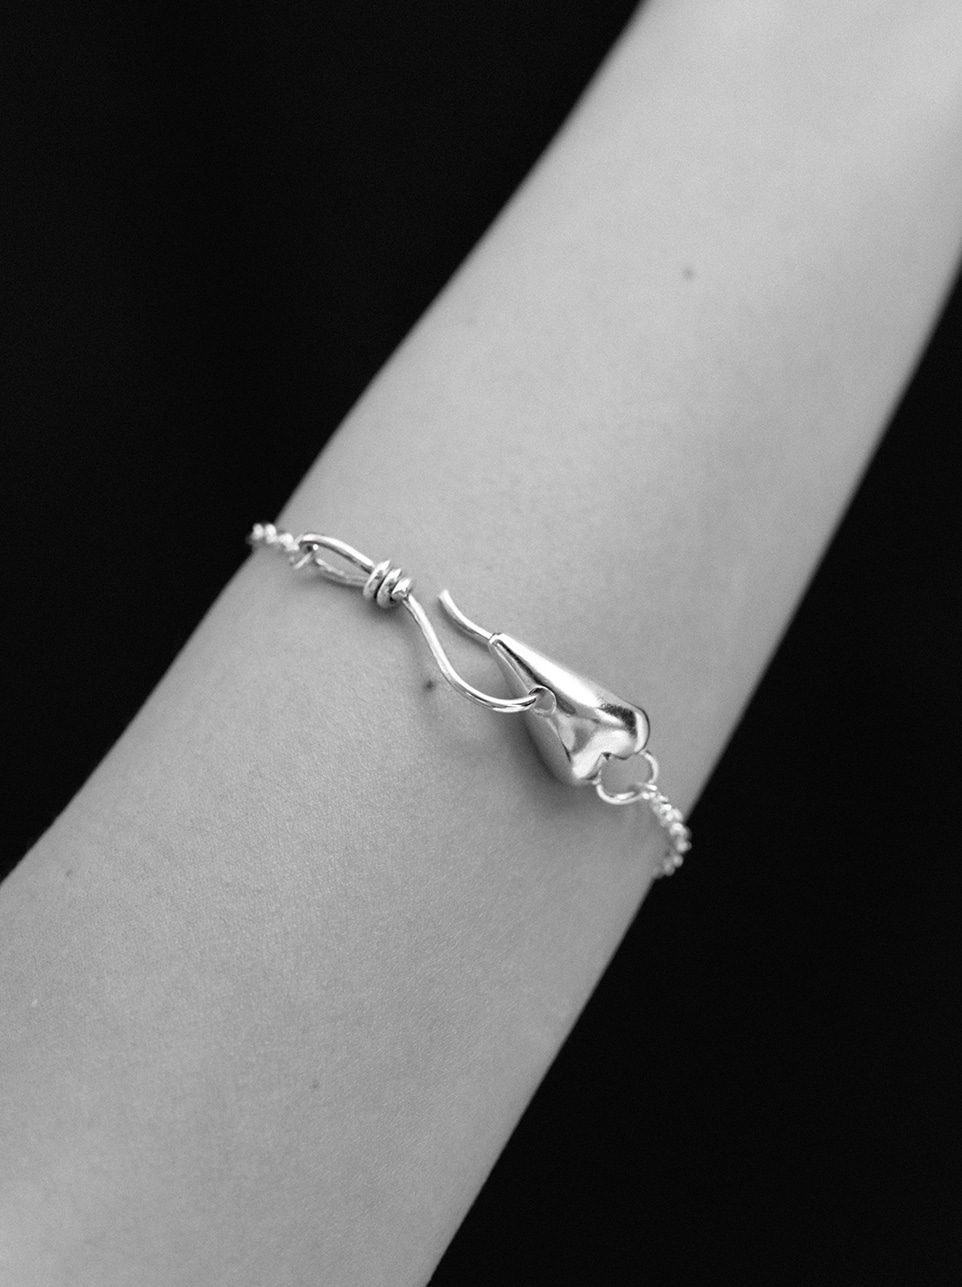 Rope love chain bracelet